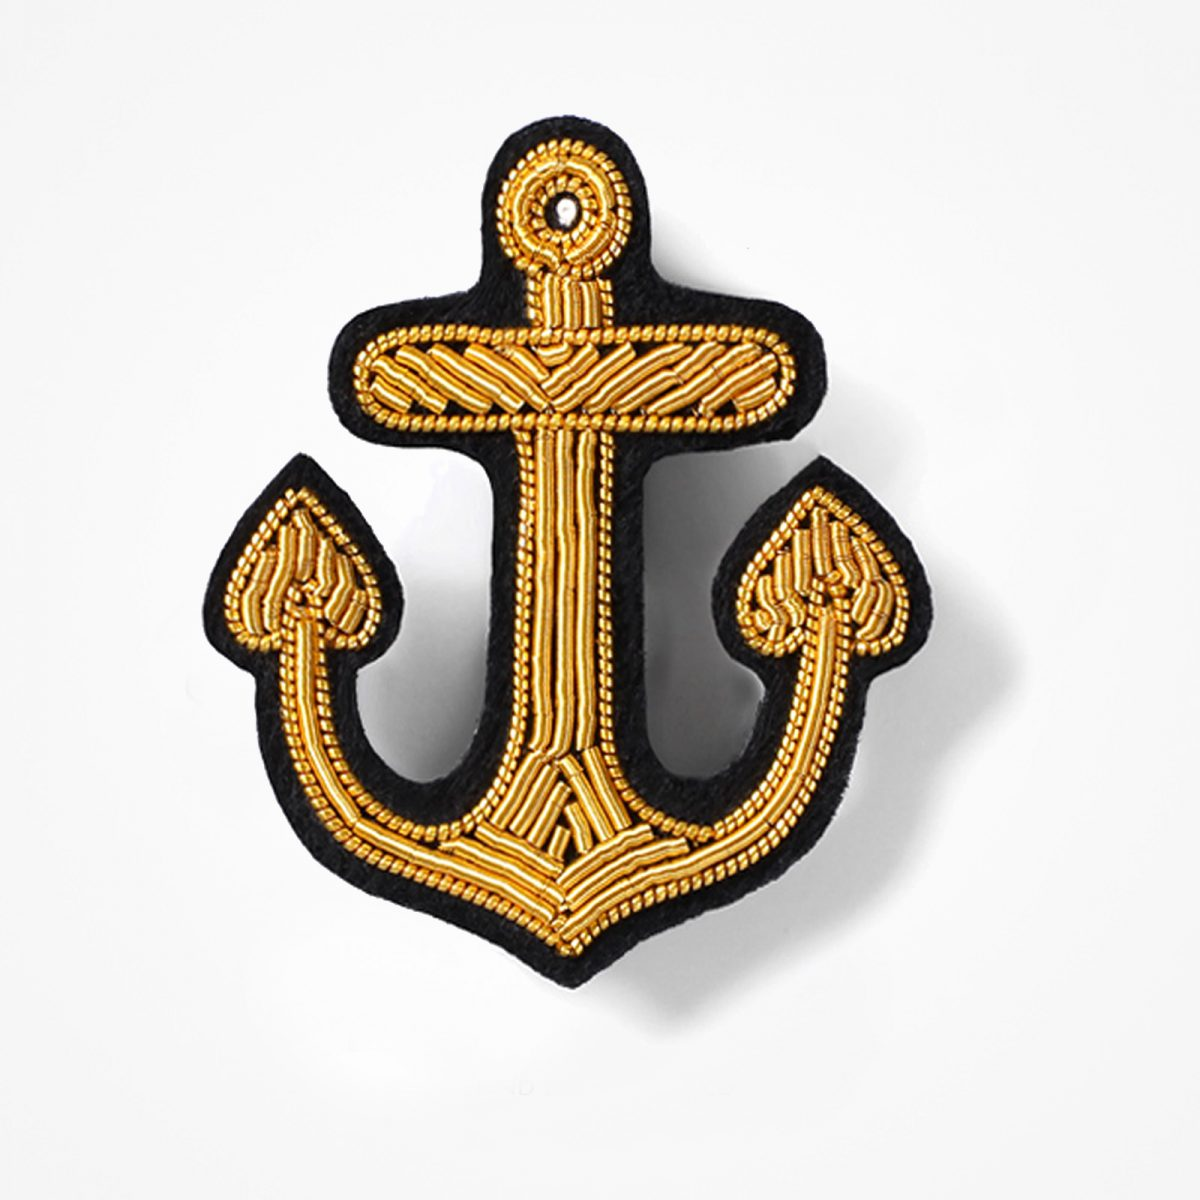 Anchor Embroidered Blazer Bullion Patch - Fashionable Anchor Blazer Bullion PatchBullion wire hand-stitched on Black colour FeltMade by skilled artisansSize is approx 3x3 inchesAvailable gold, silver and blue colours Bullion wireWith pin backing, sew-on backing available 5